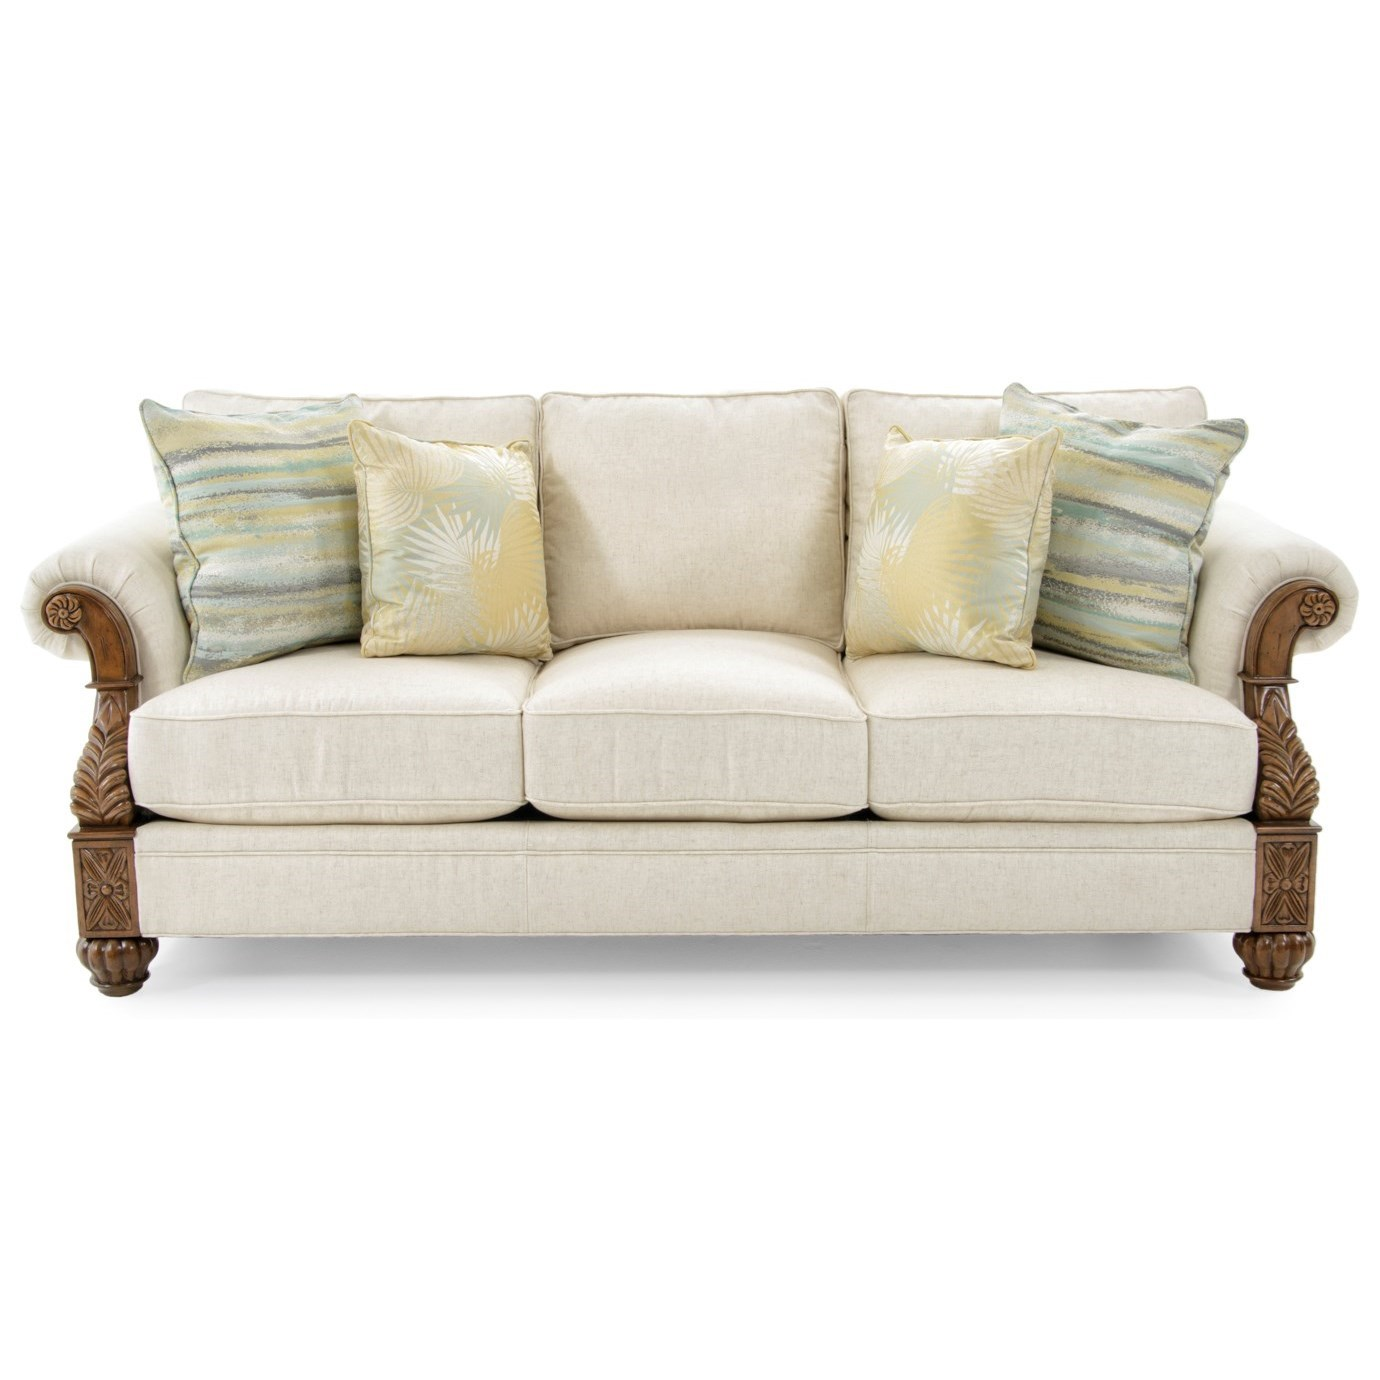 Tommy bahama home tommy bahama upholstery 7530 33 02 benoa for Furniture upholstery